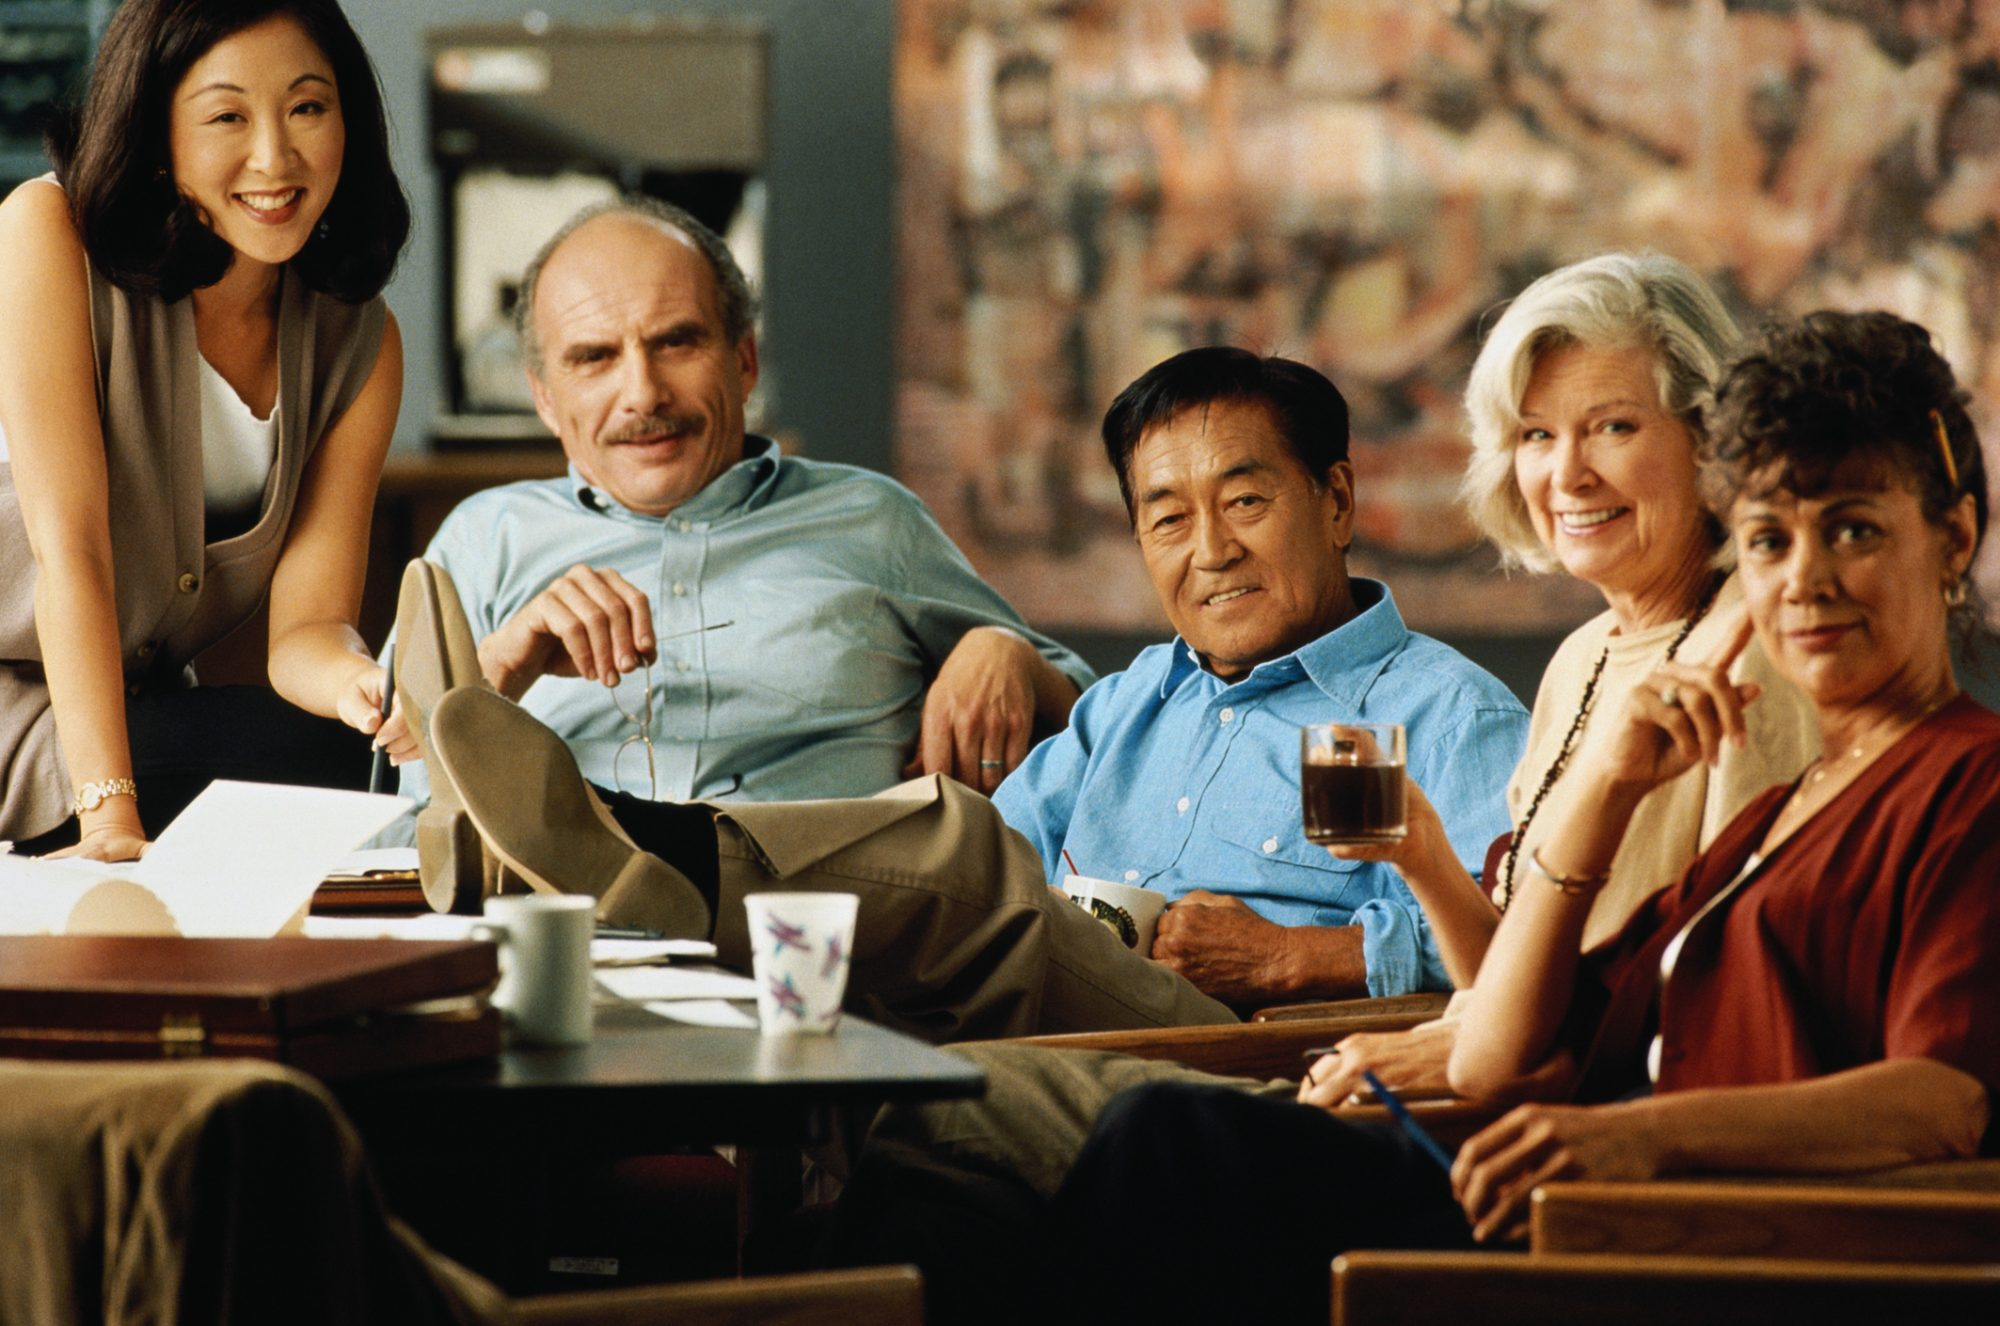 Group of business executives sitting around table, portrait